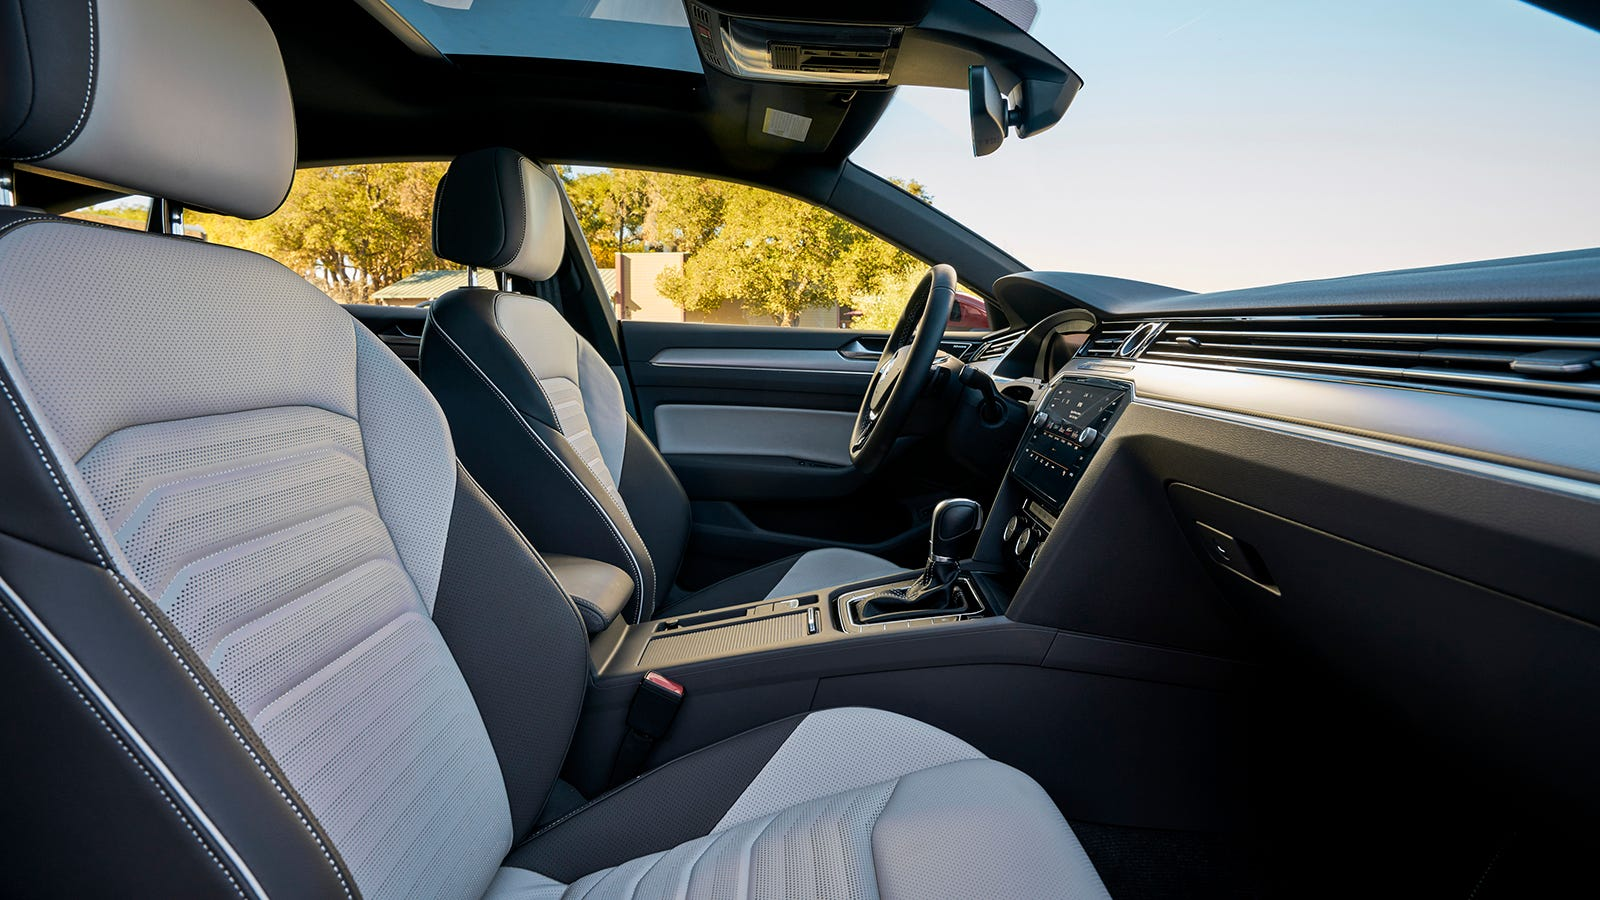 VW's factory photos of the SEL Premium R-Line bring out the best of the cockpit